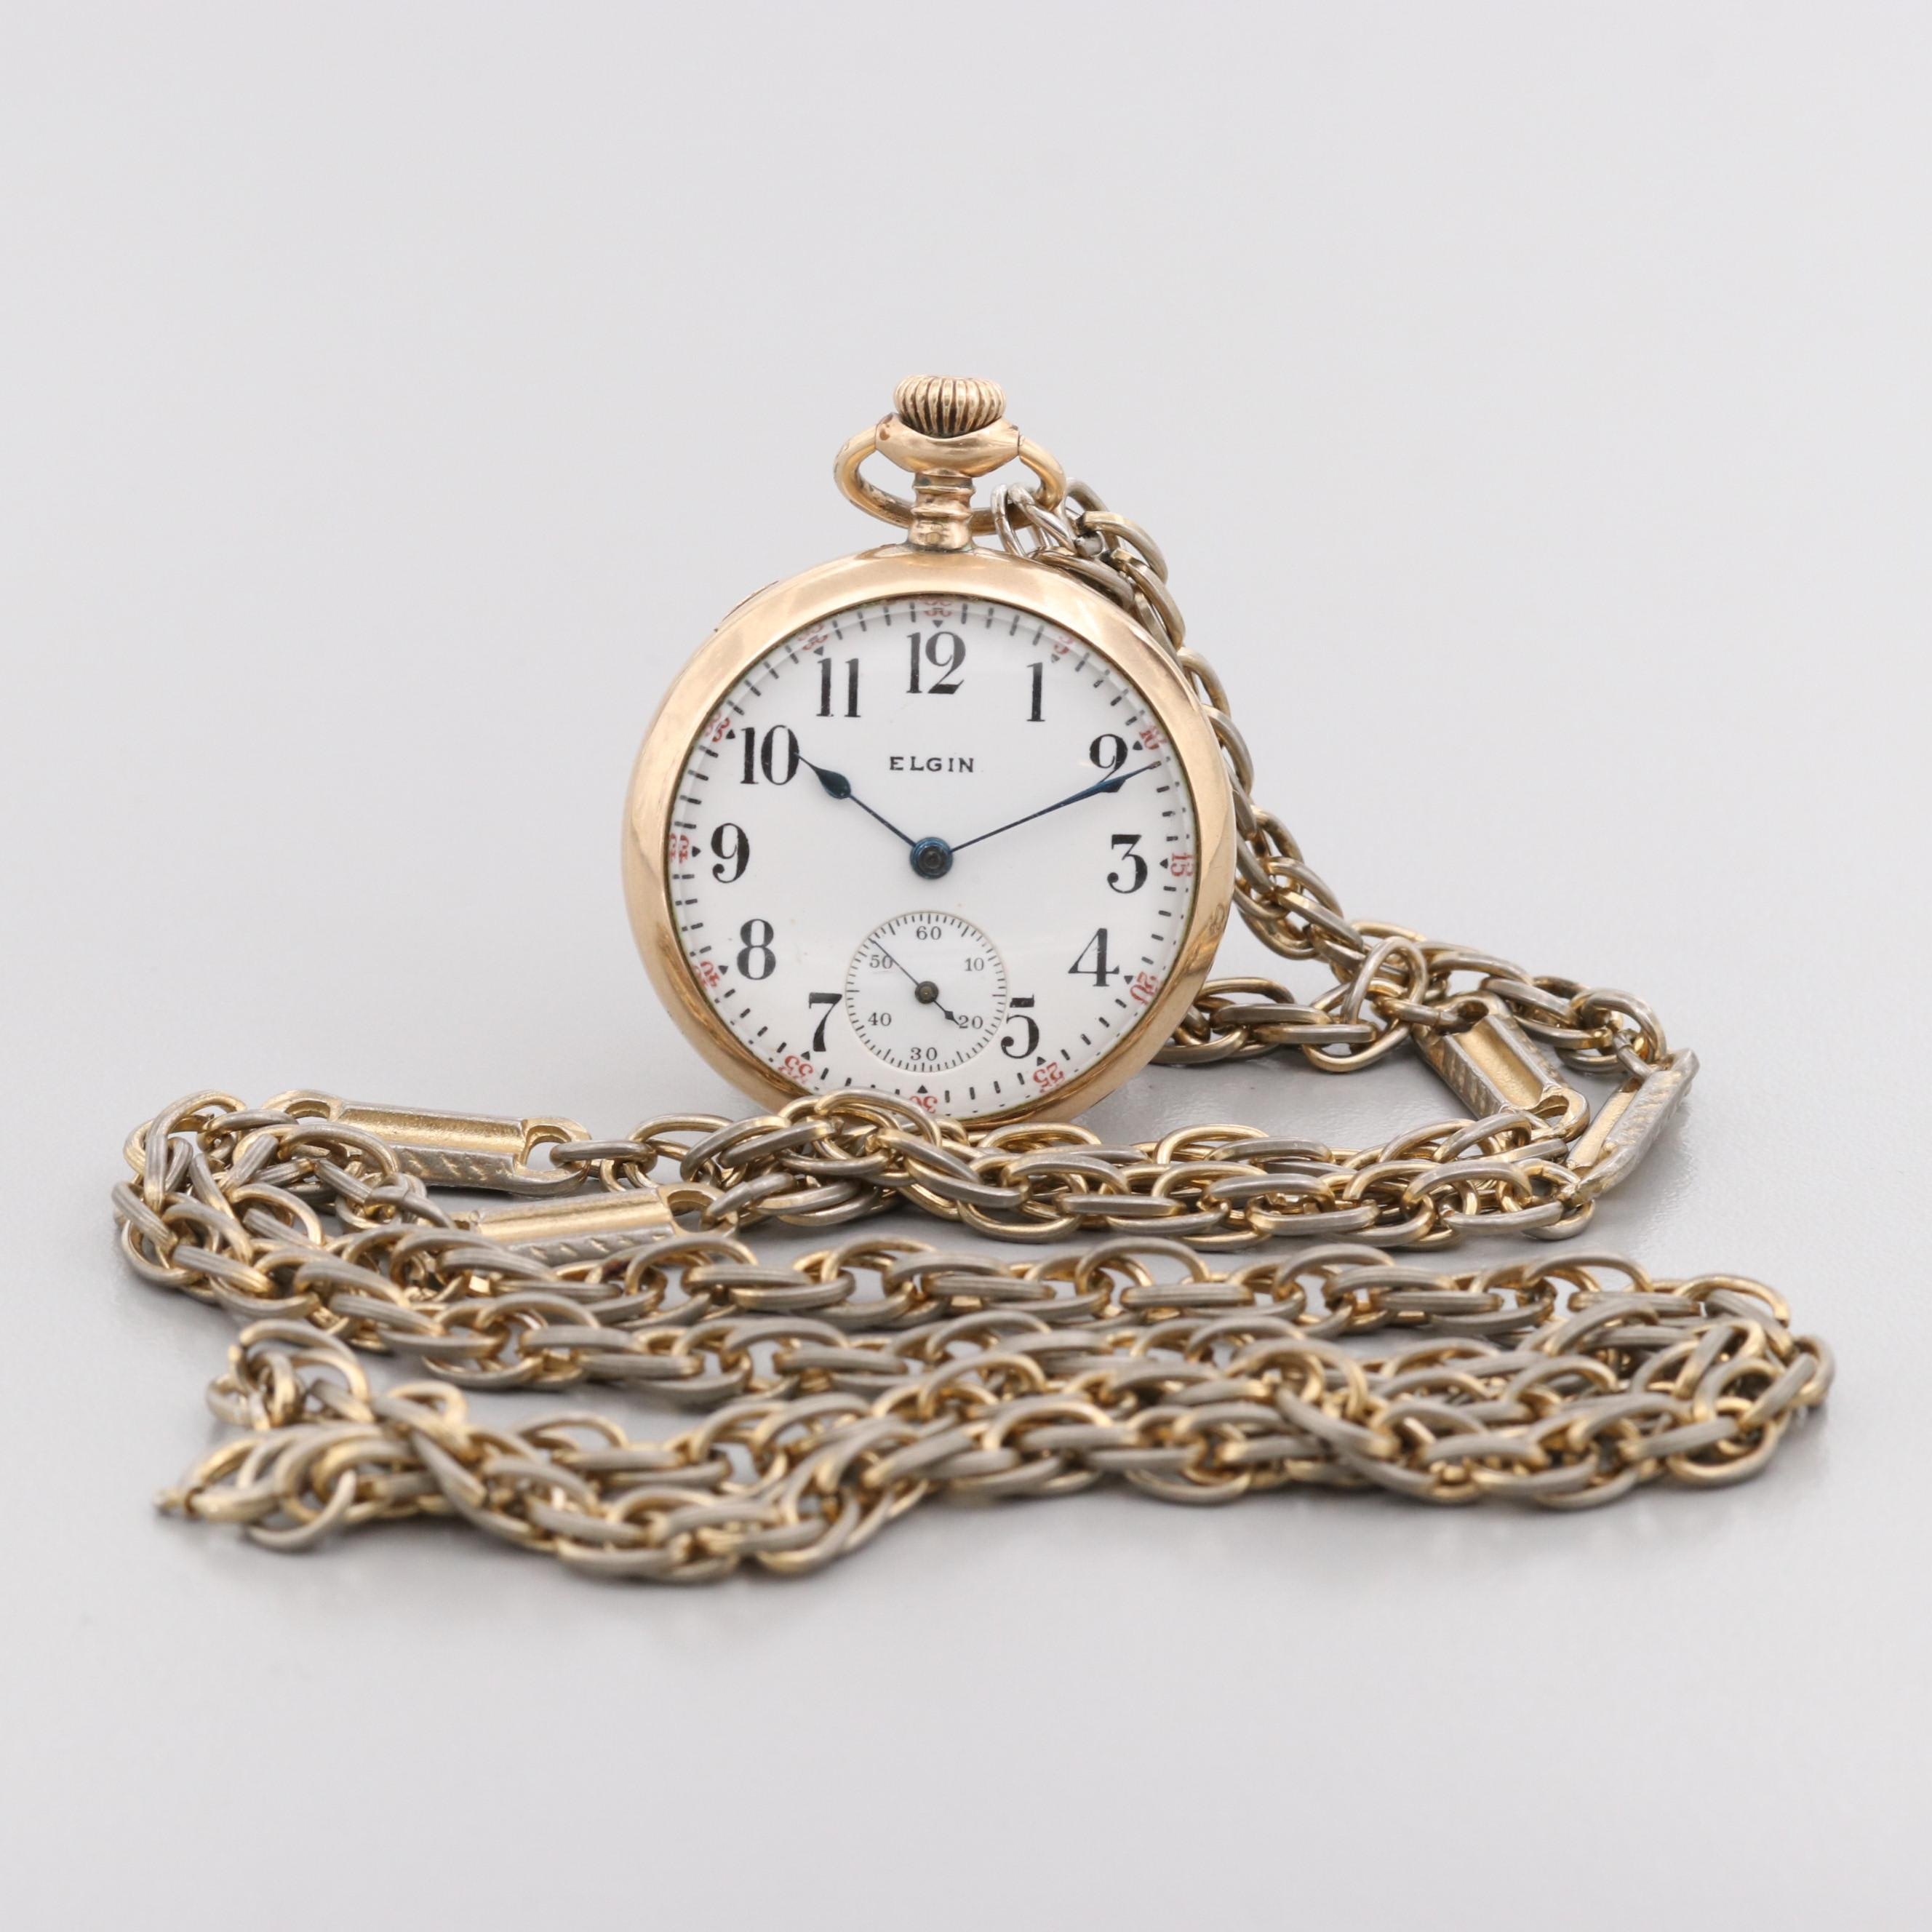 Elgin Gold Filled Pocket Watch With Gold Tone Fob Chain, 1917